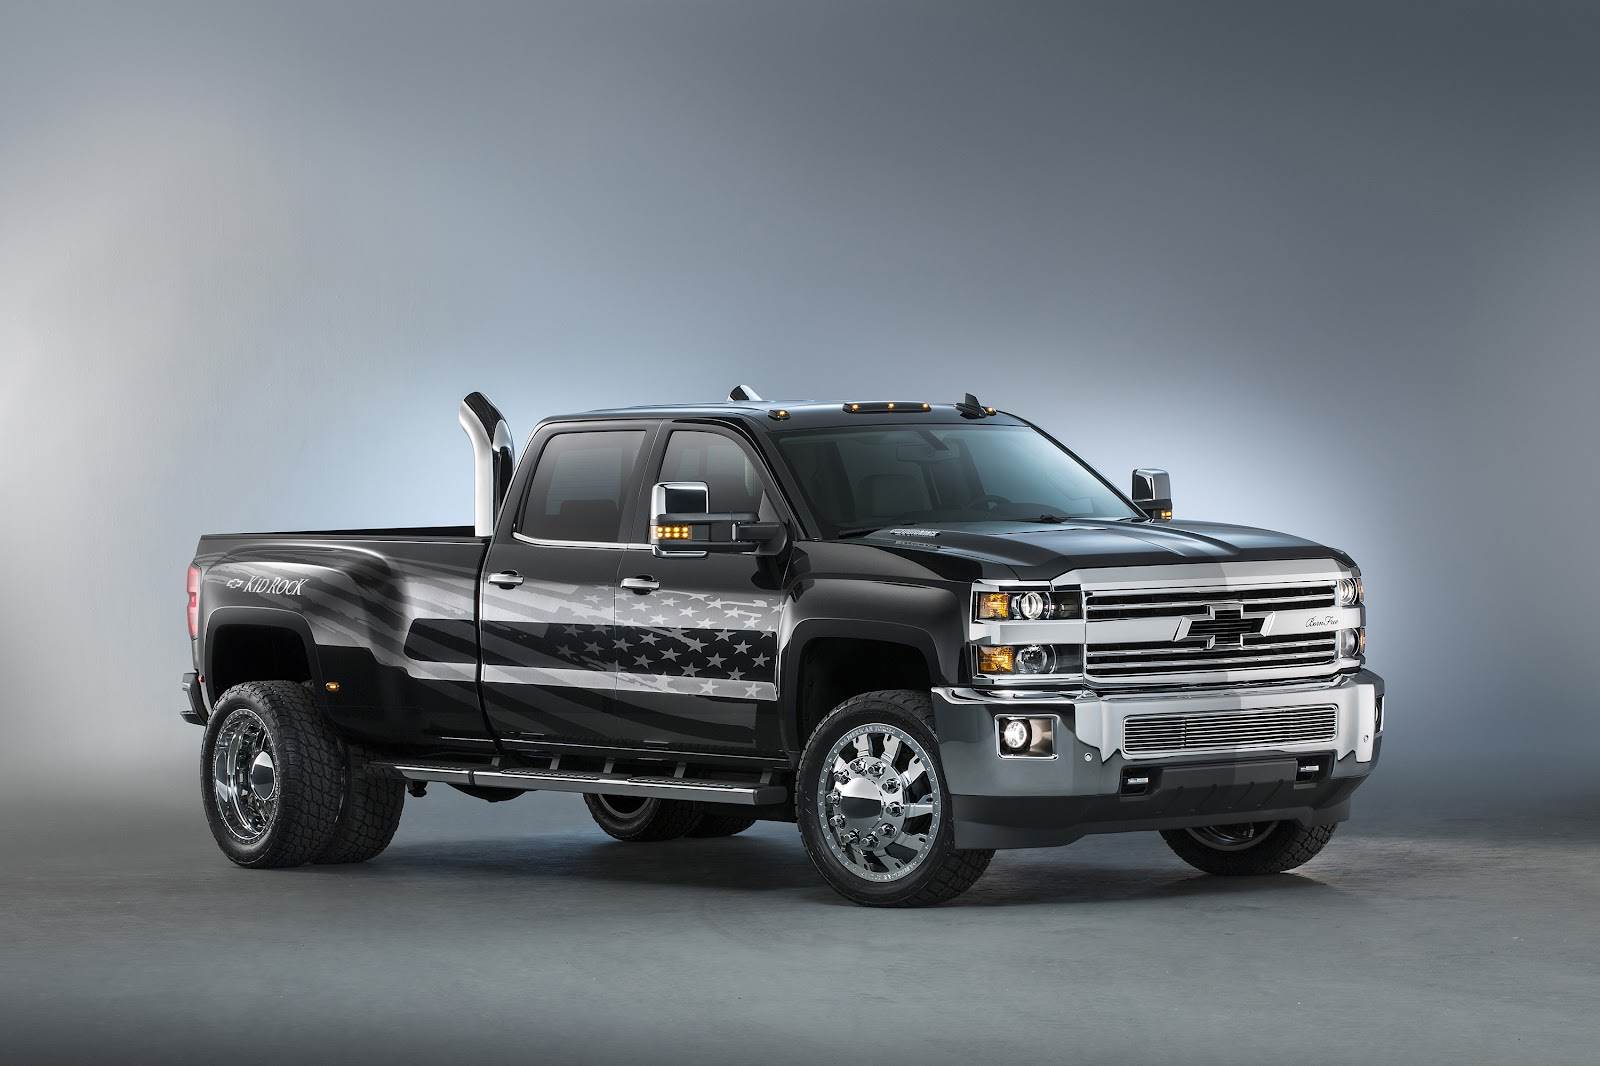 Top 10 Pickup Trucks For Hot Shot Trucking in 2019 - That